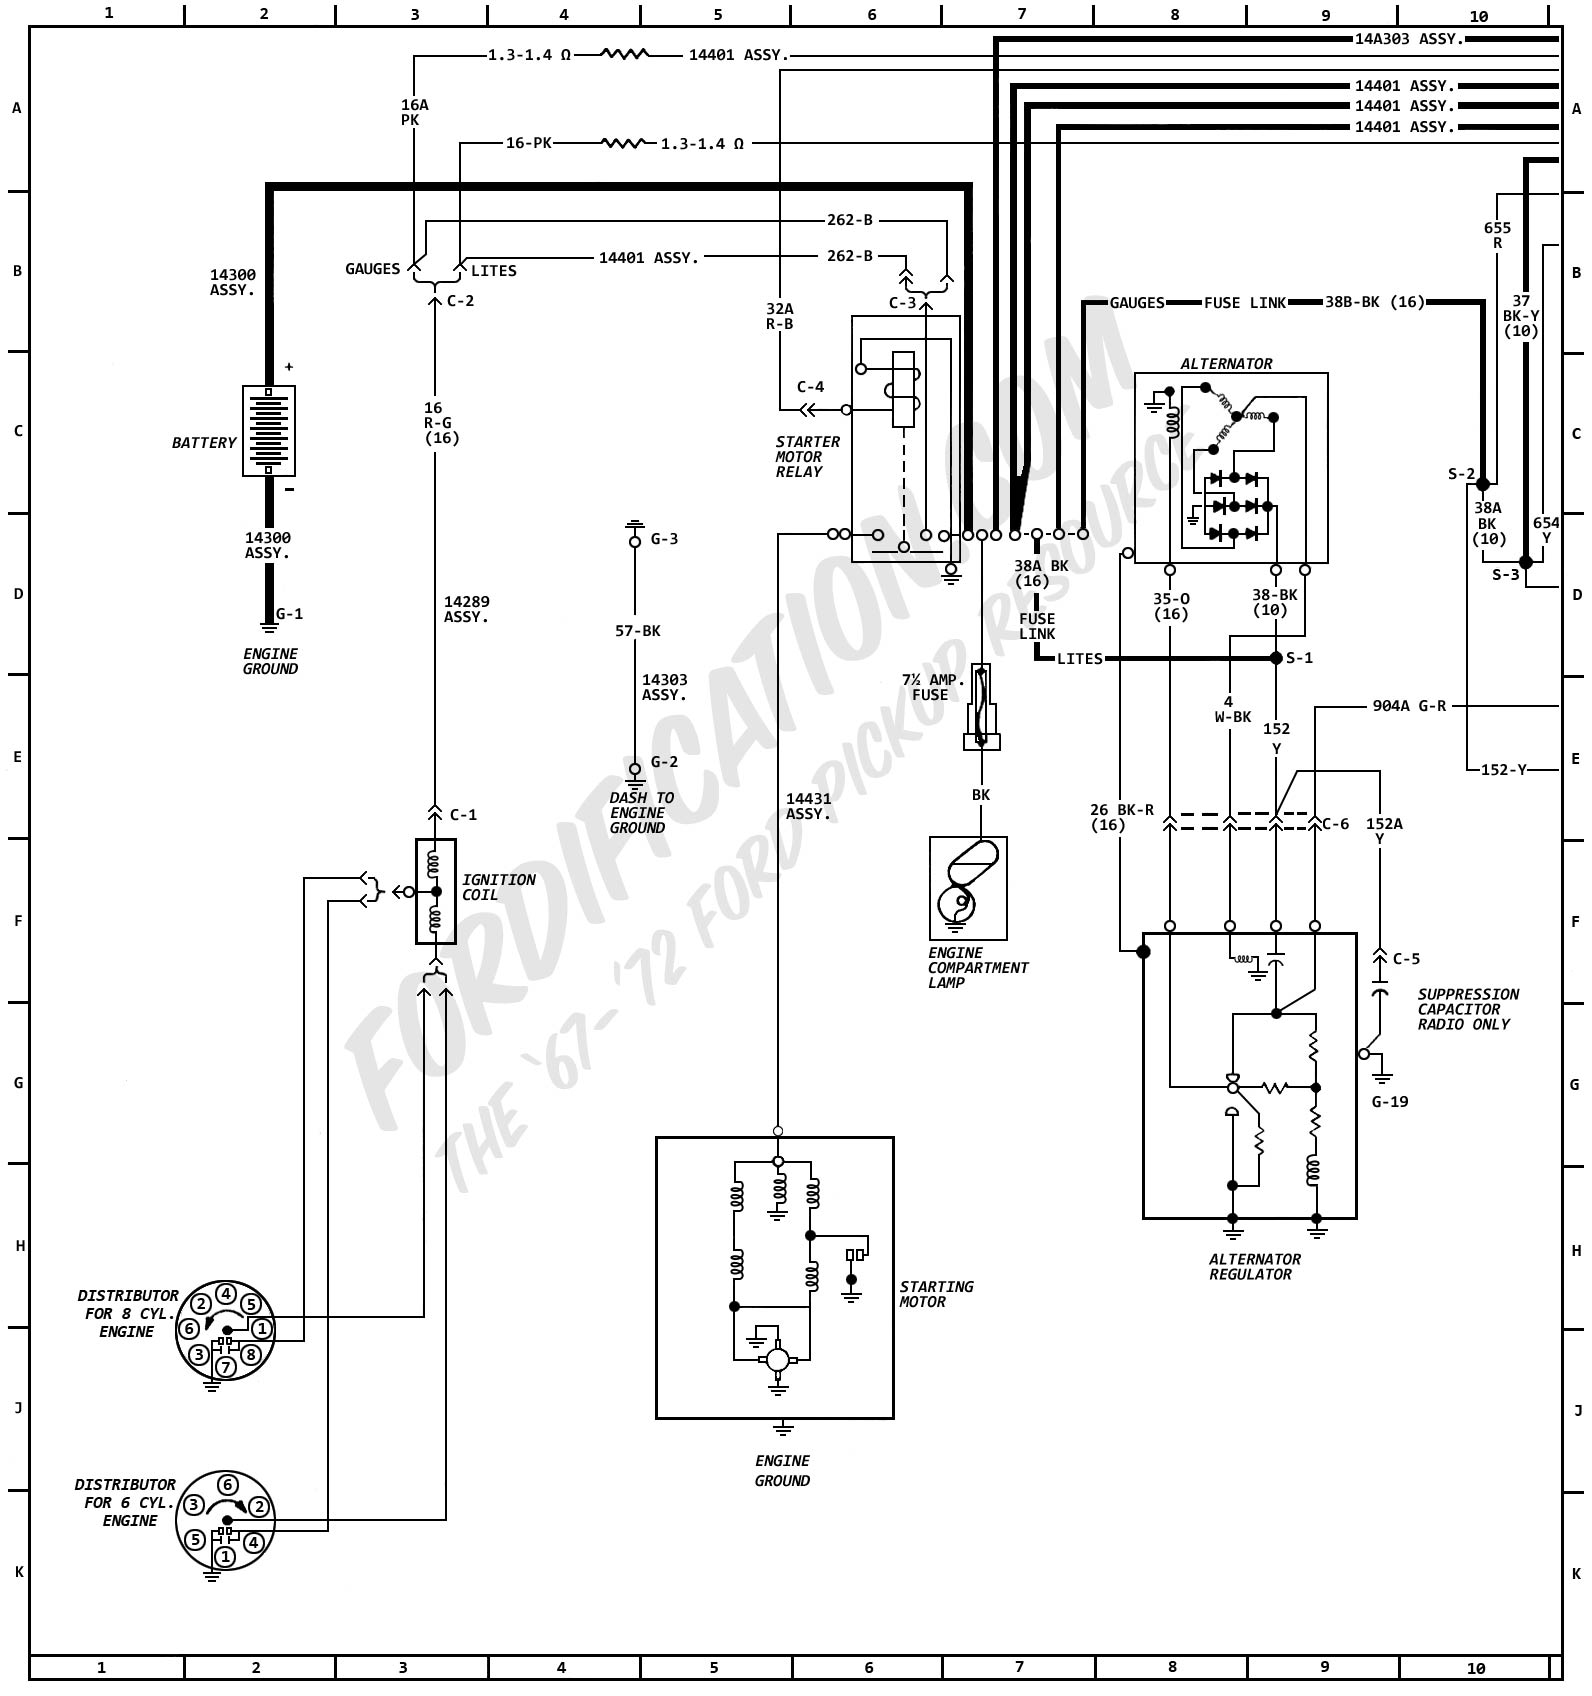 1972 Ford Truck Wiring Diagrams Fordification Com Ford F100 Frame 1972 Ford  F100 Wiring Schematics